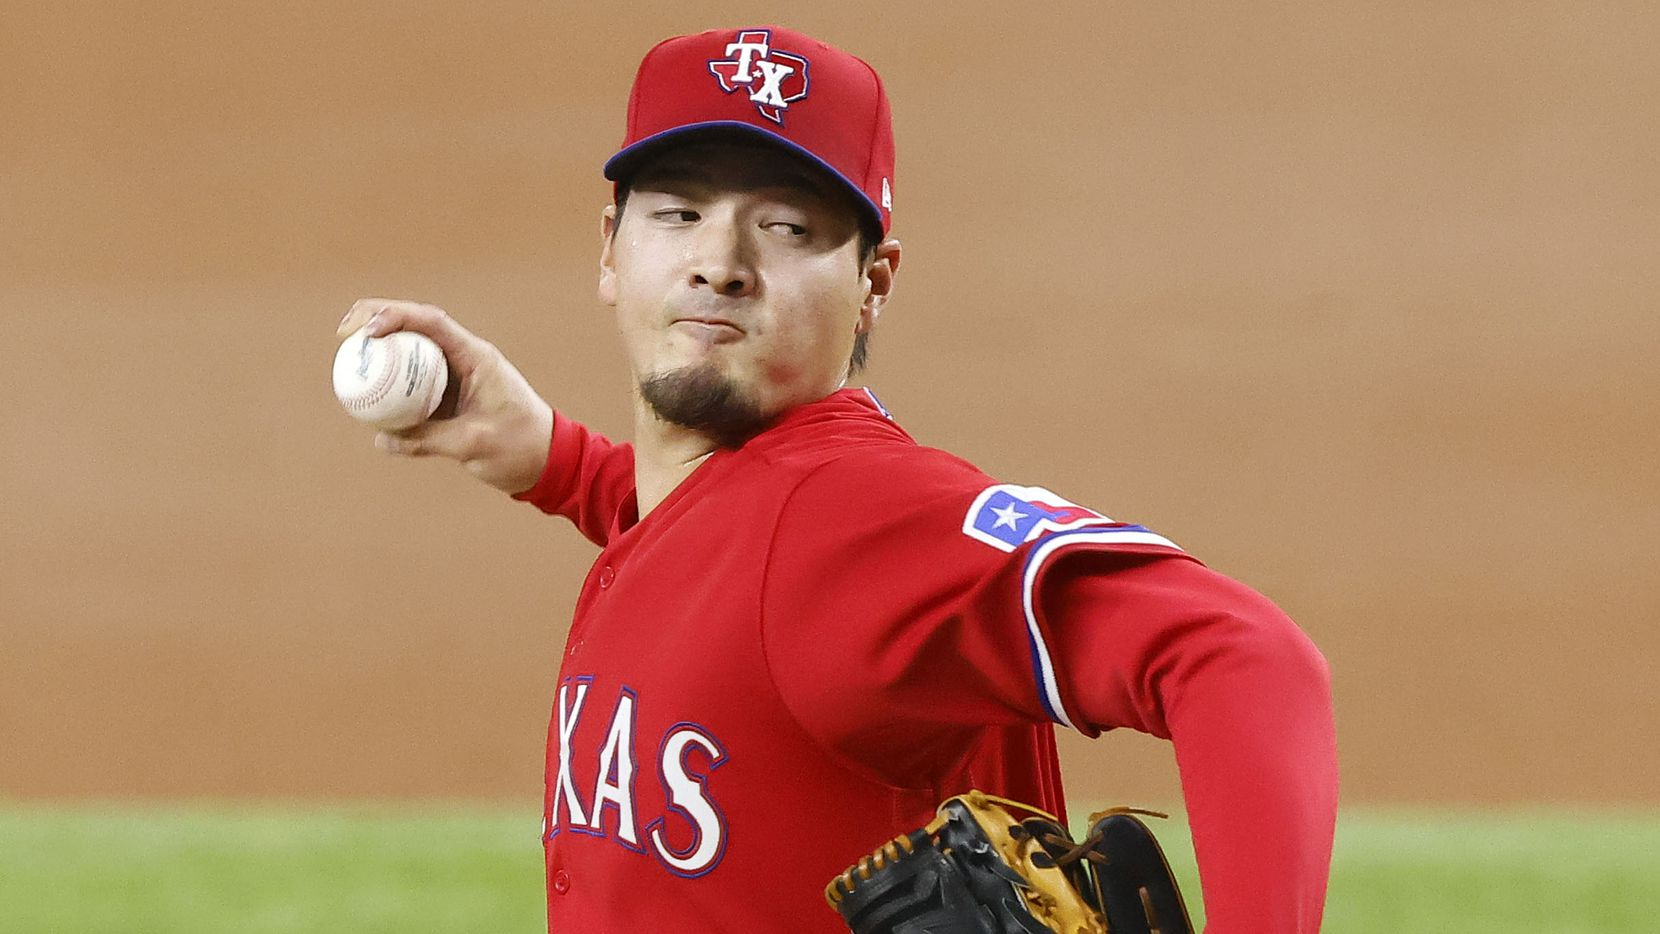 Texas Rangers starting pitcher Kohei Arihara (35) throws against the Boston Red Sox during the first inning at Globe Life Field in Arlington, Texas, Friday, April 30, 2021.